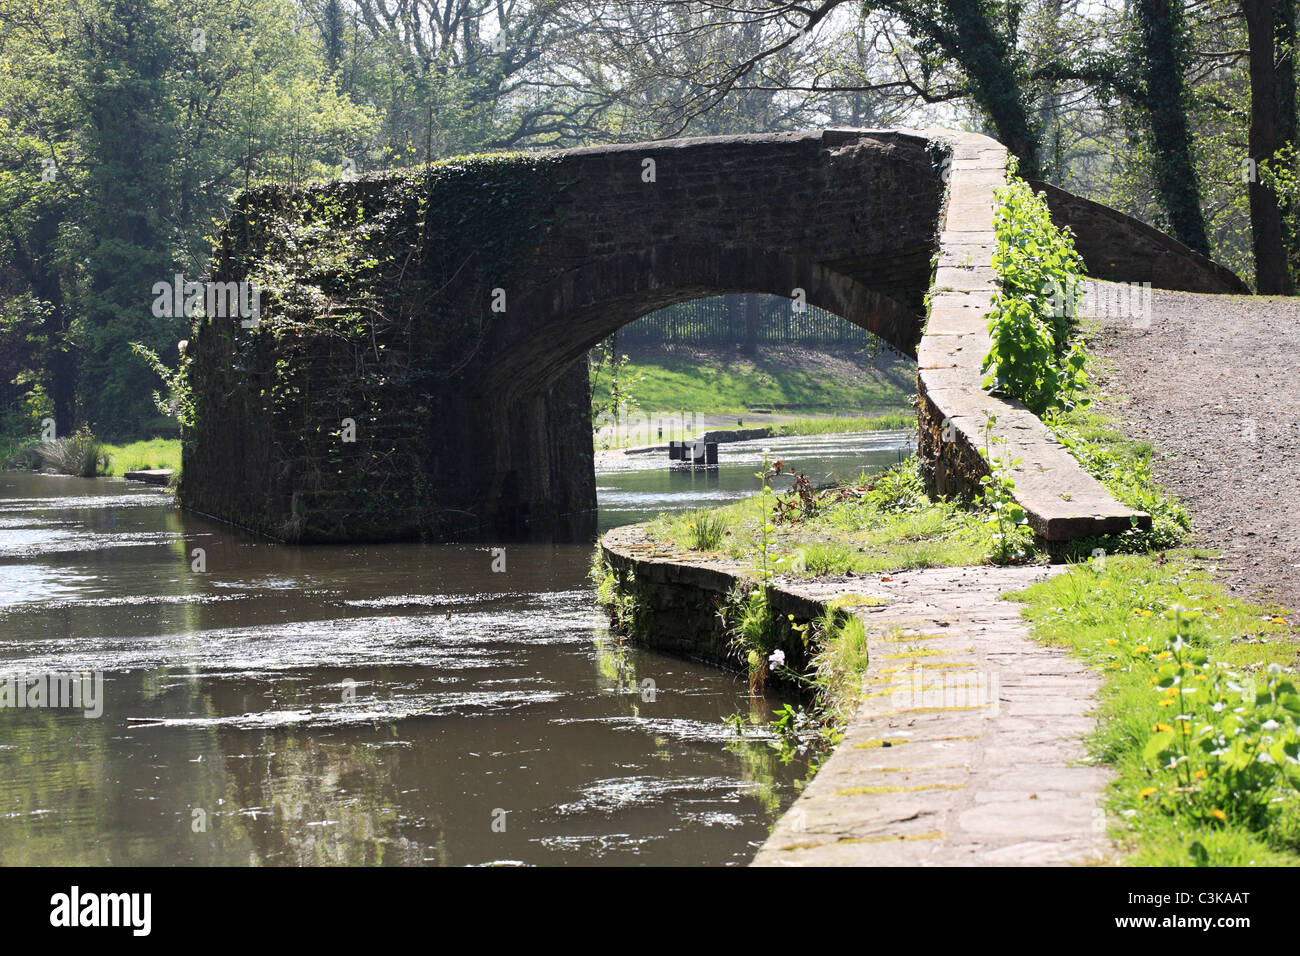 Skew bridge over the canal. Aberdulais canal basin, Neath, South Wales, UK - Stock Image